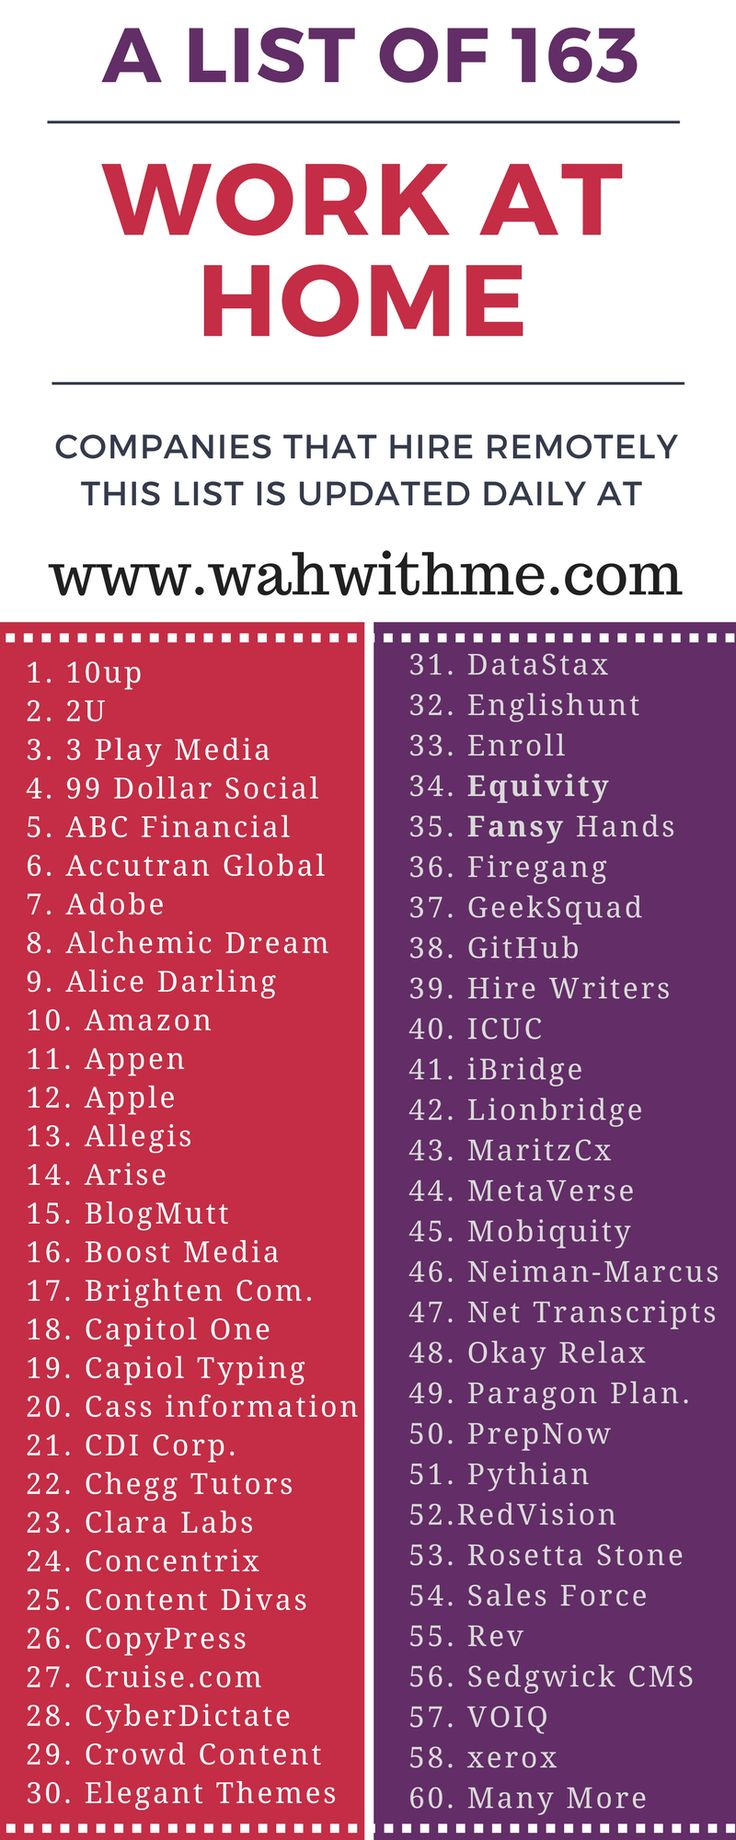 Start working from home. Here are lists that are update daily. Writing jobs that pays very high, one of the highest paid for writing jobs. Work remotely out of your home. #MoneyMoneyMoneyandAbba